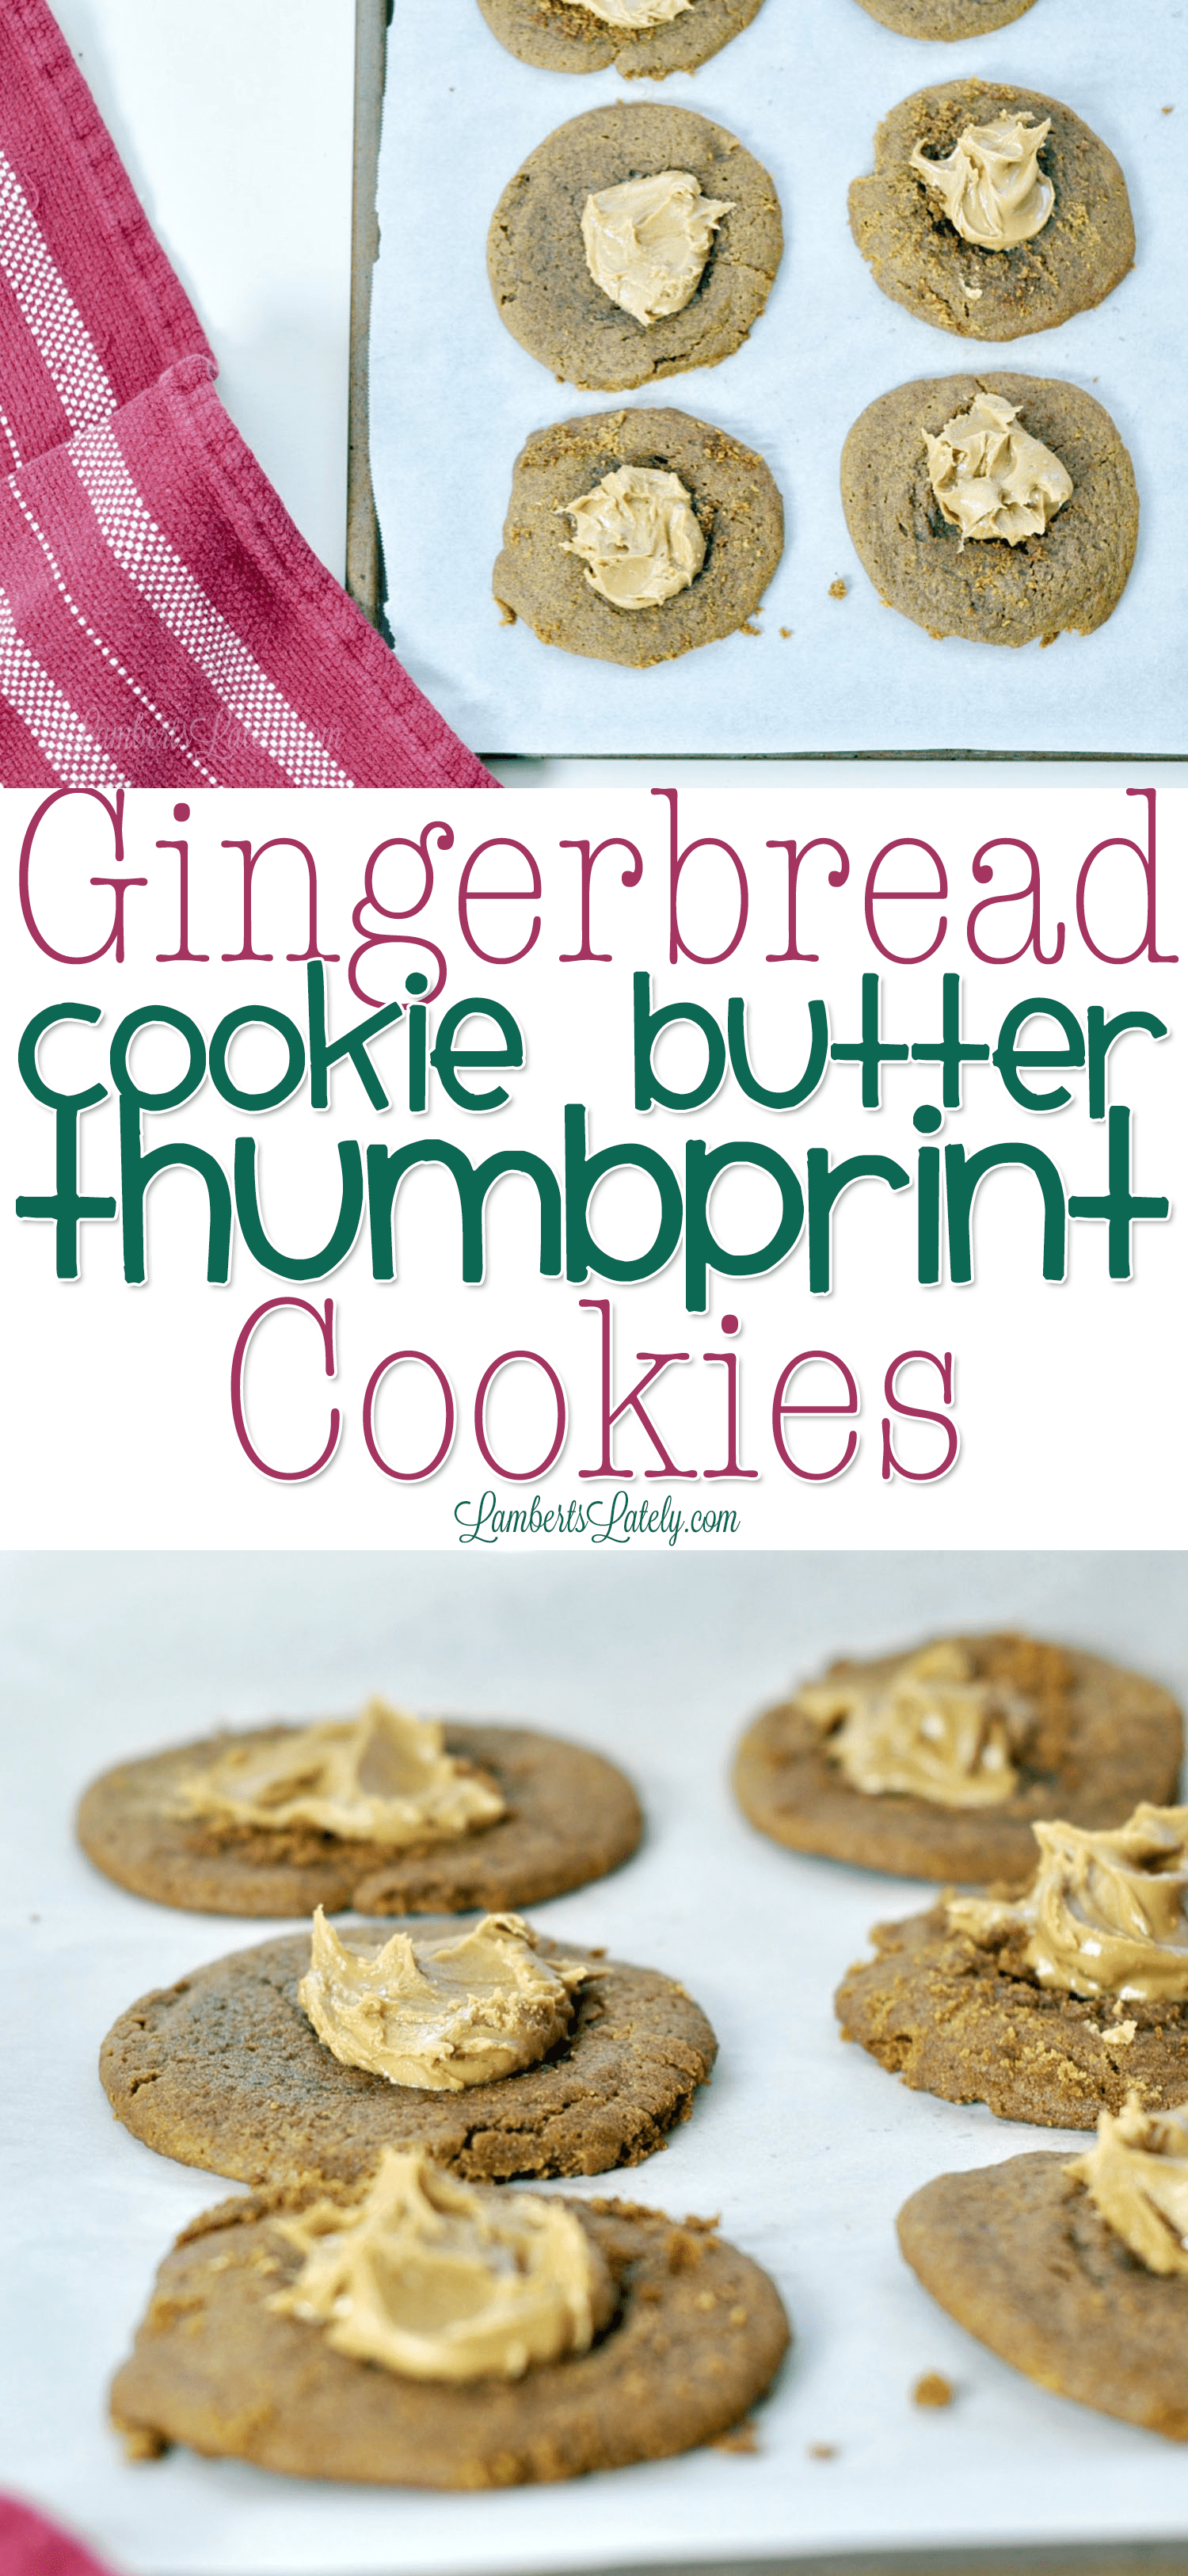 Such an easy recipe for gingerbread cookies - they are so soft and chewy! This is a great recipe for homemade Christmas/holiday cookies with kids. A thumbprint of cookie butter makes them even richer and more delicious.